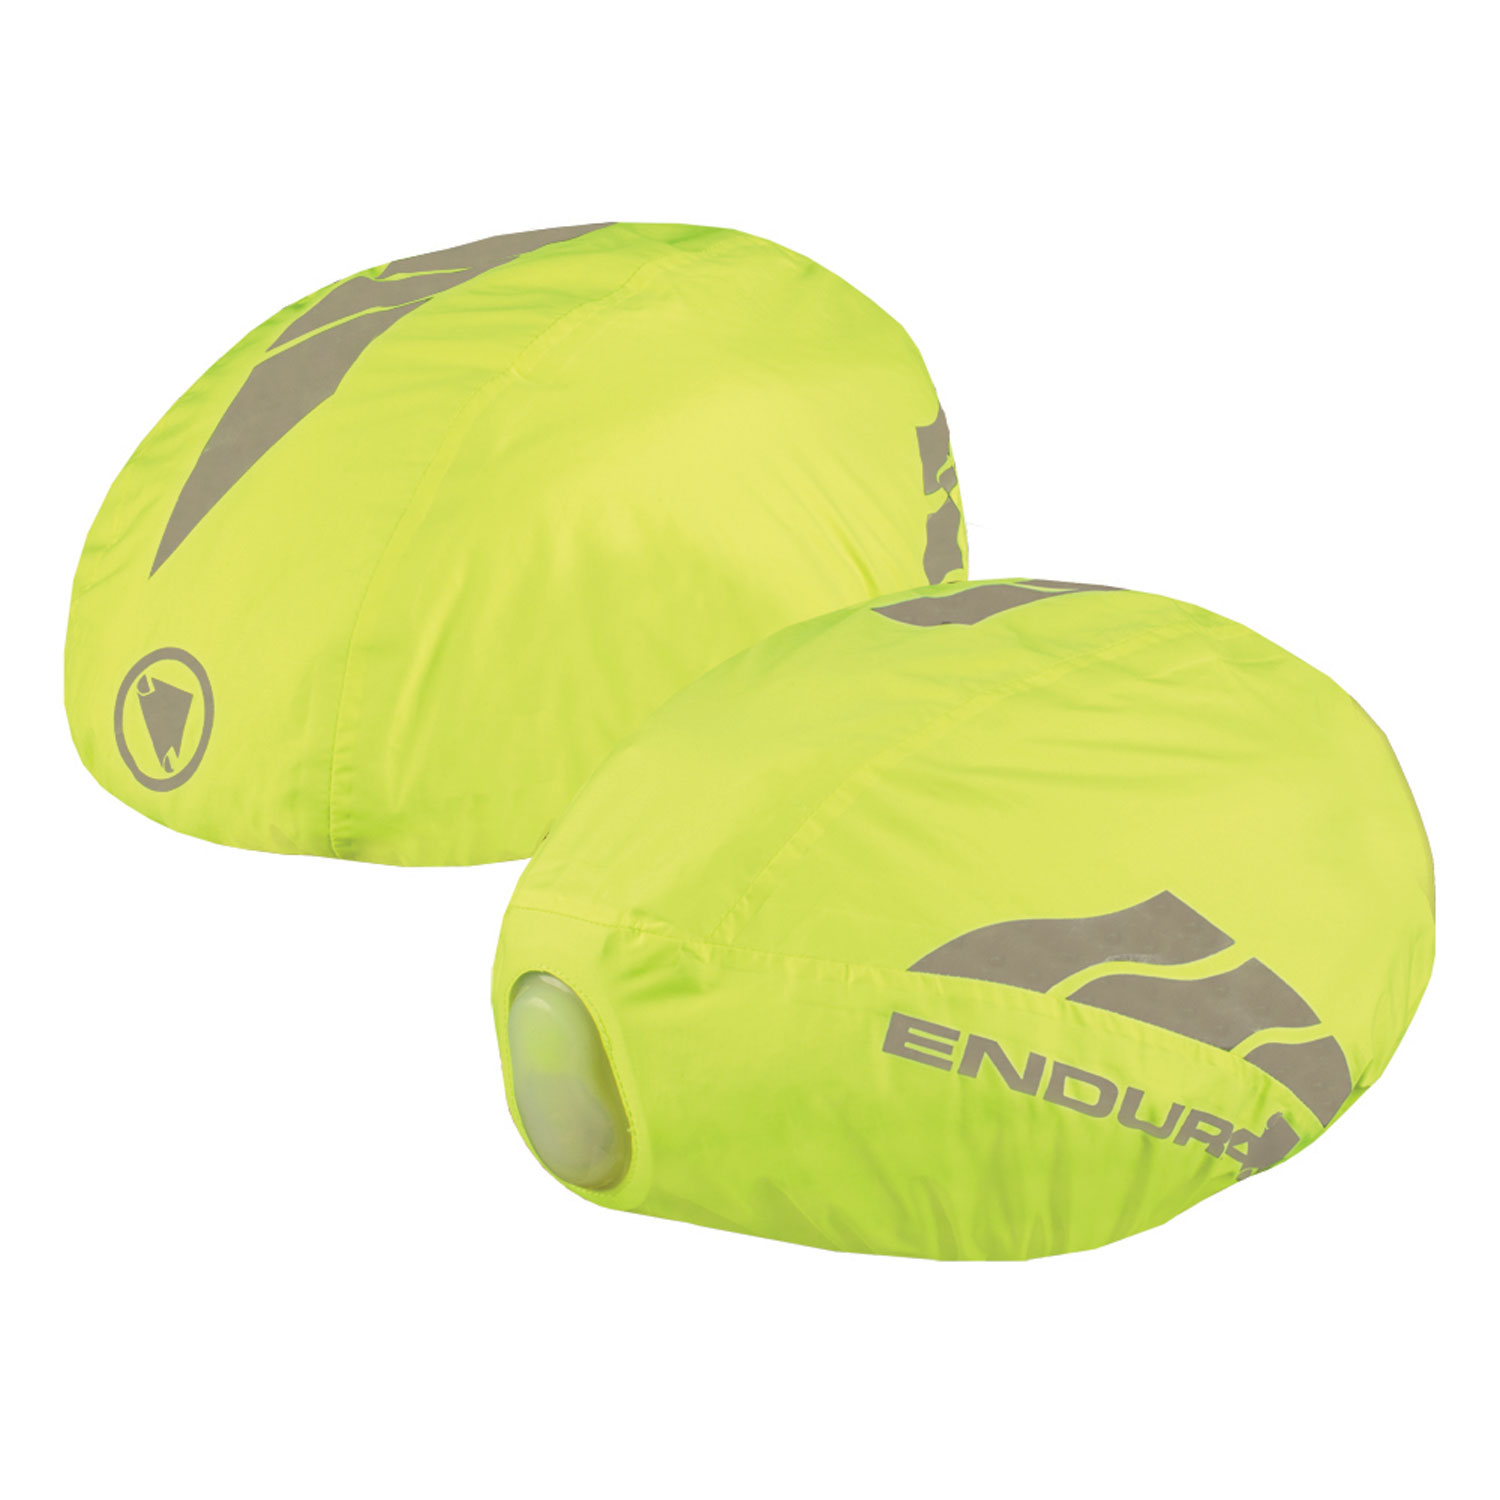 Endura Luminite Helmet Cover $35